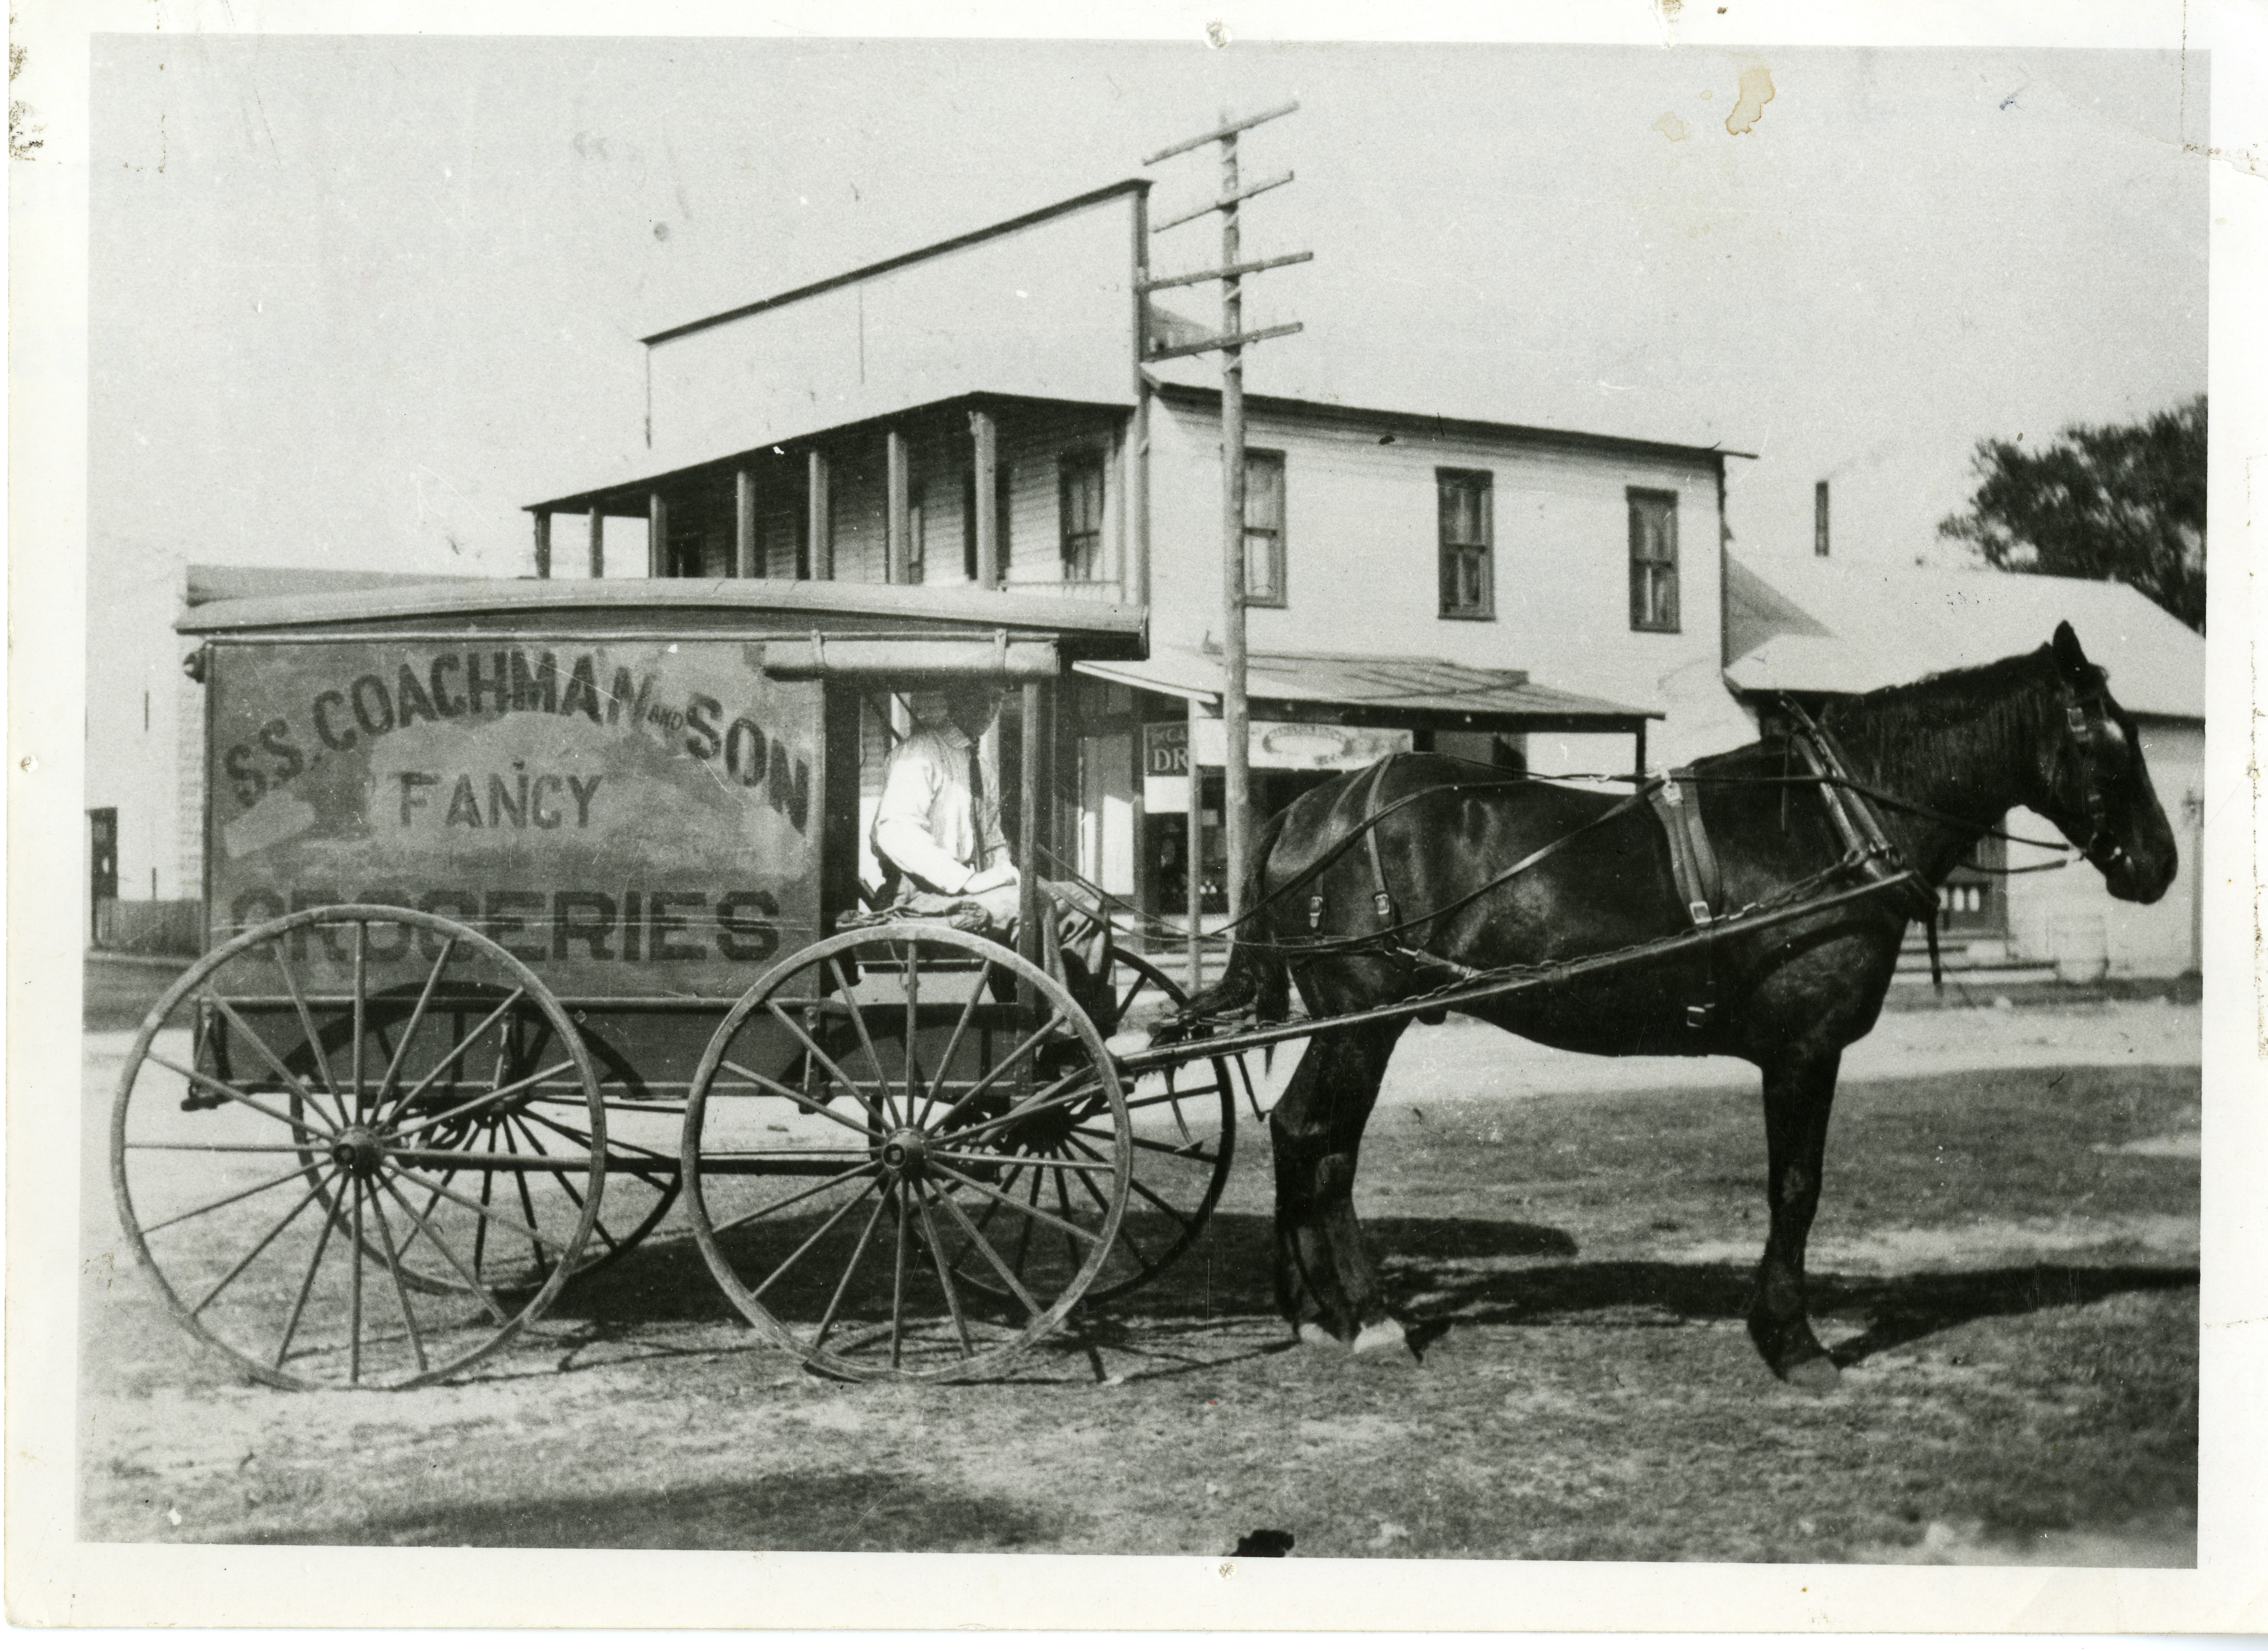 S.S. Coachman and Son Fancy Groceries horse drawn wagon, Clearwater, Florida, 1908.